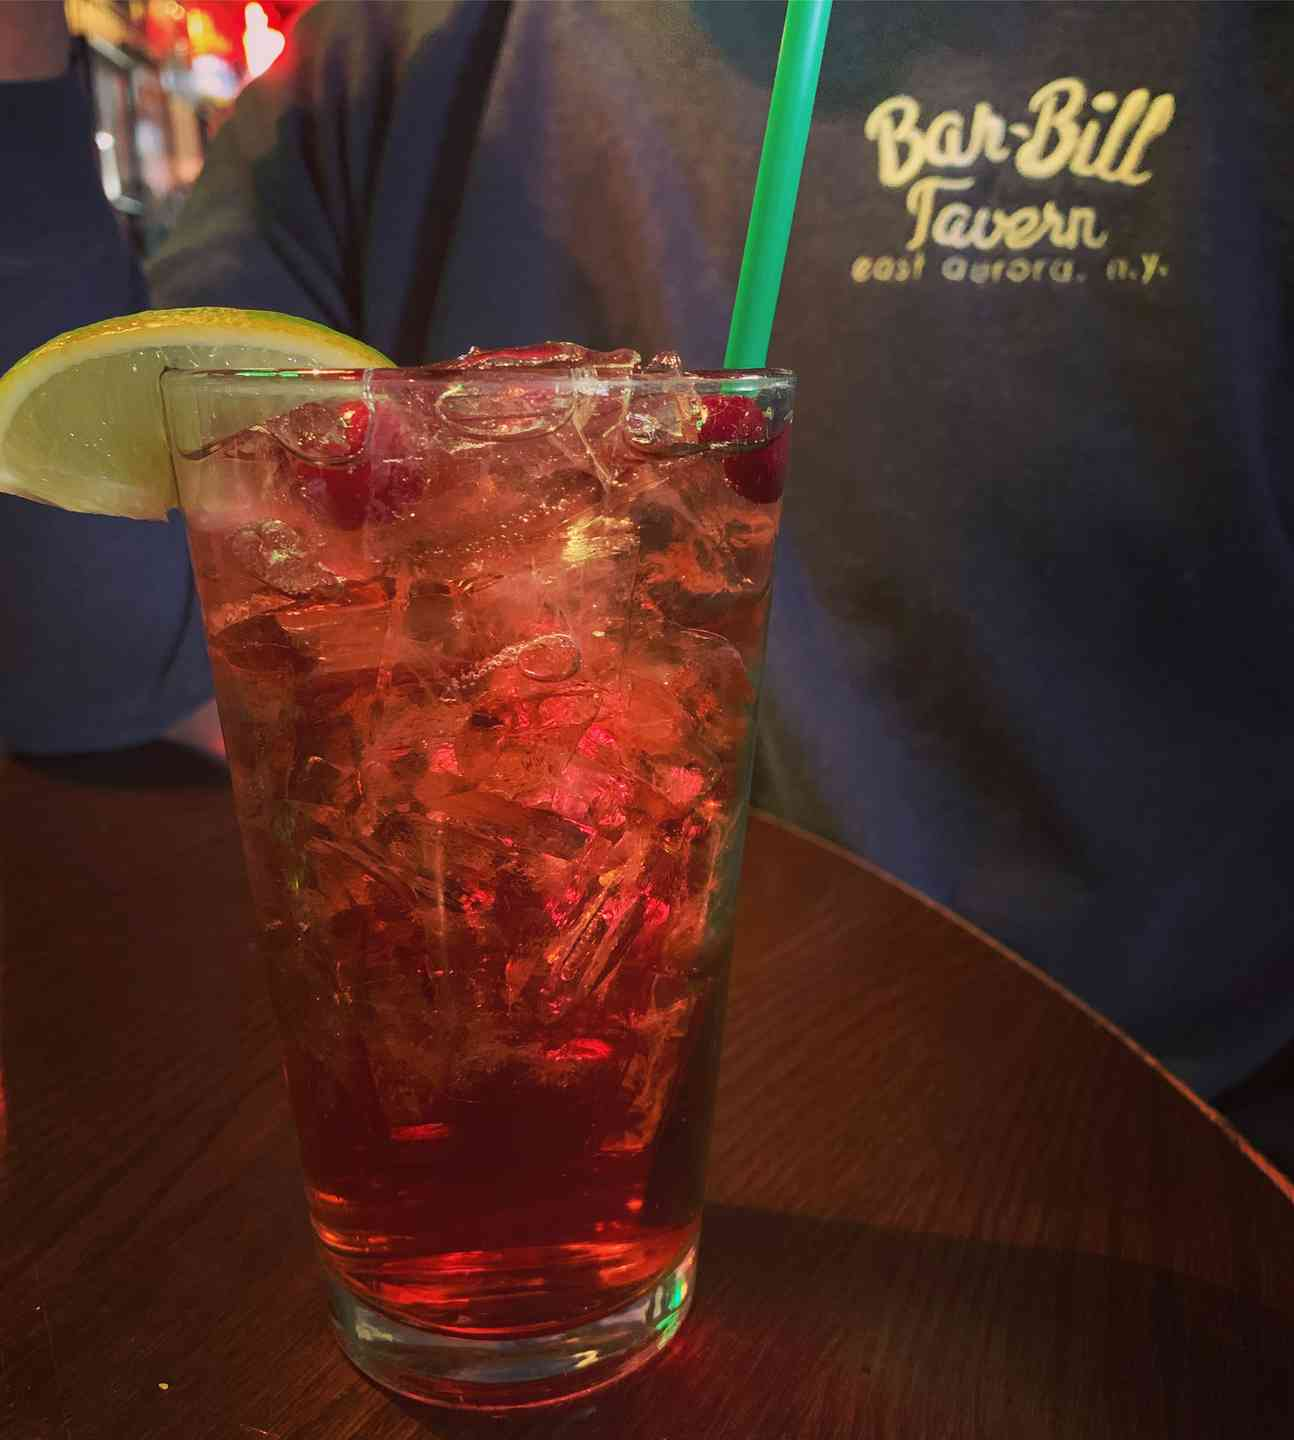 BAR-BILL WINTER MULE